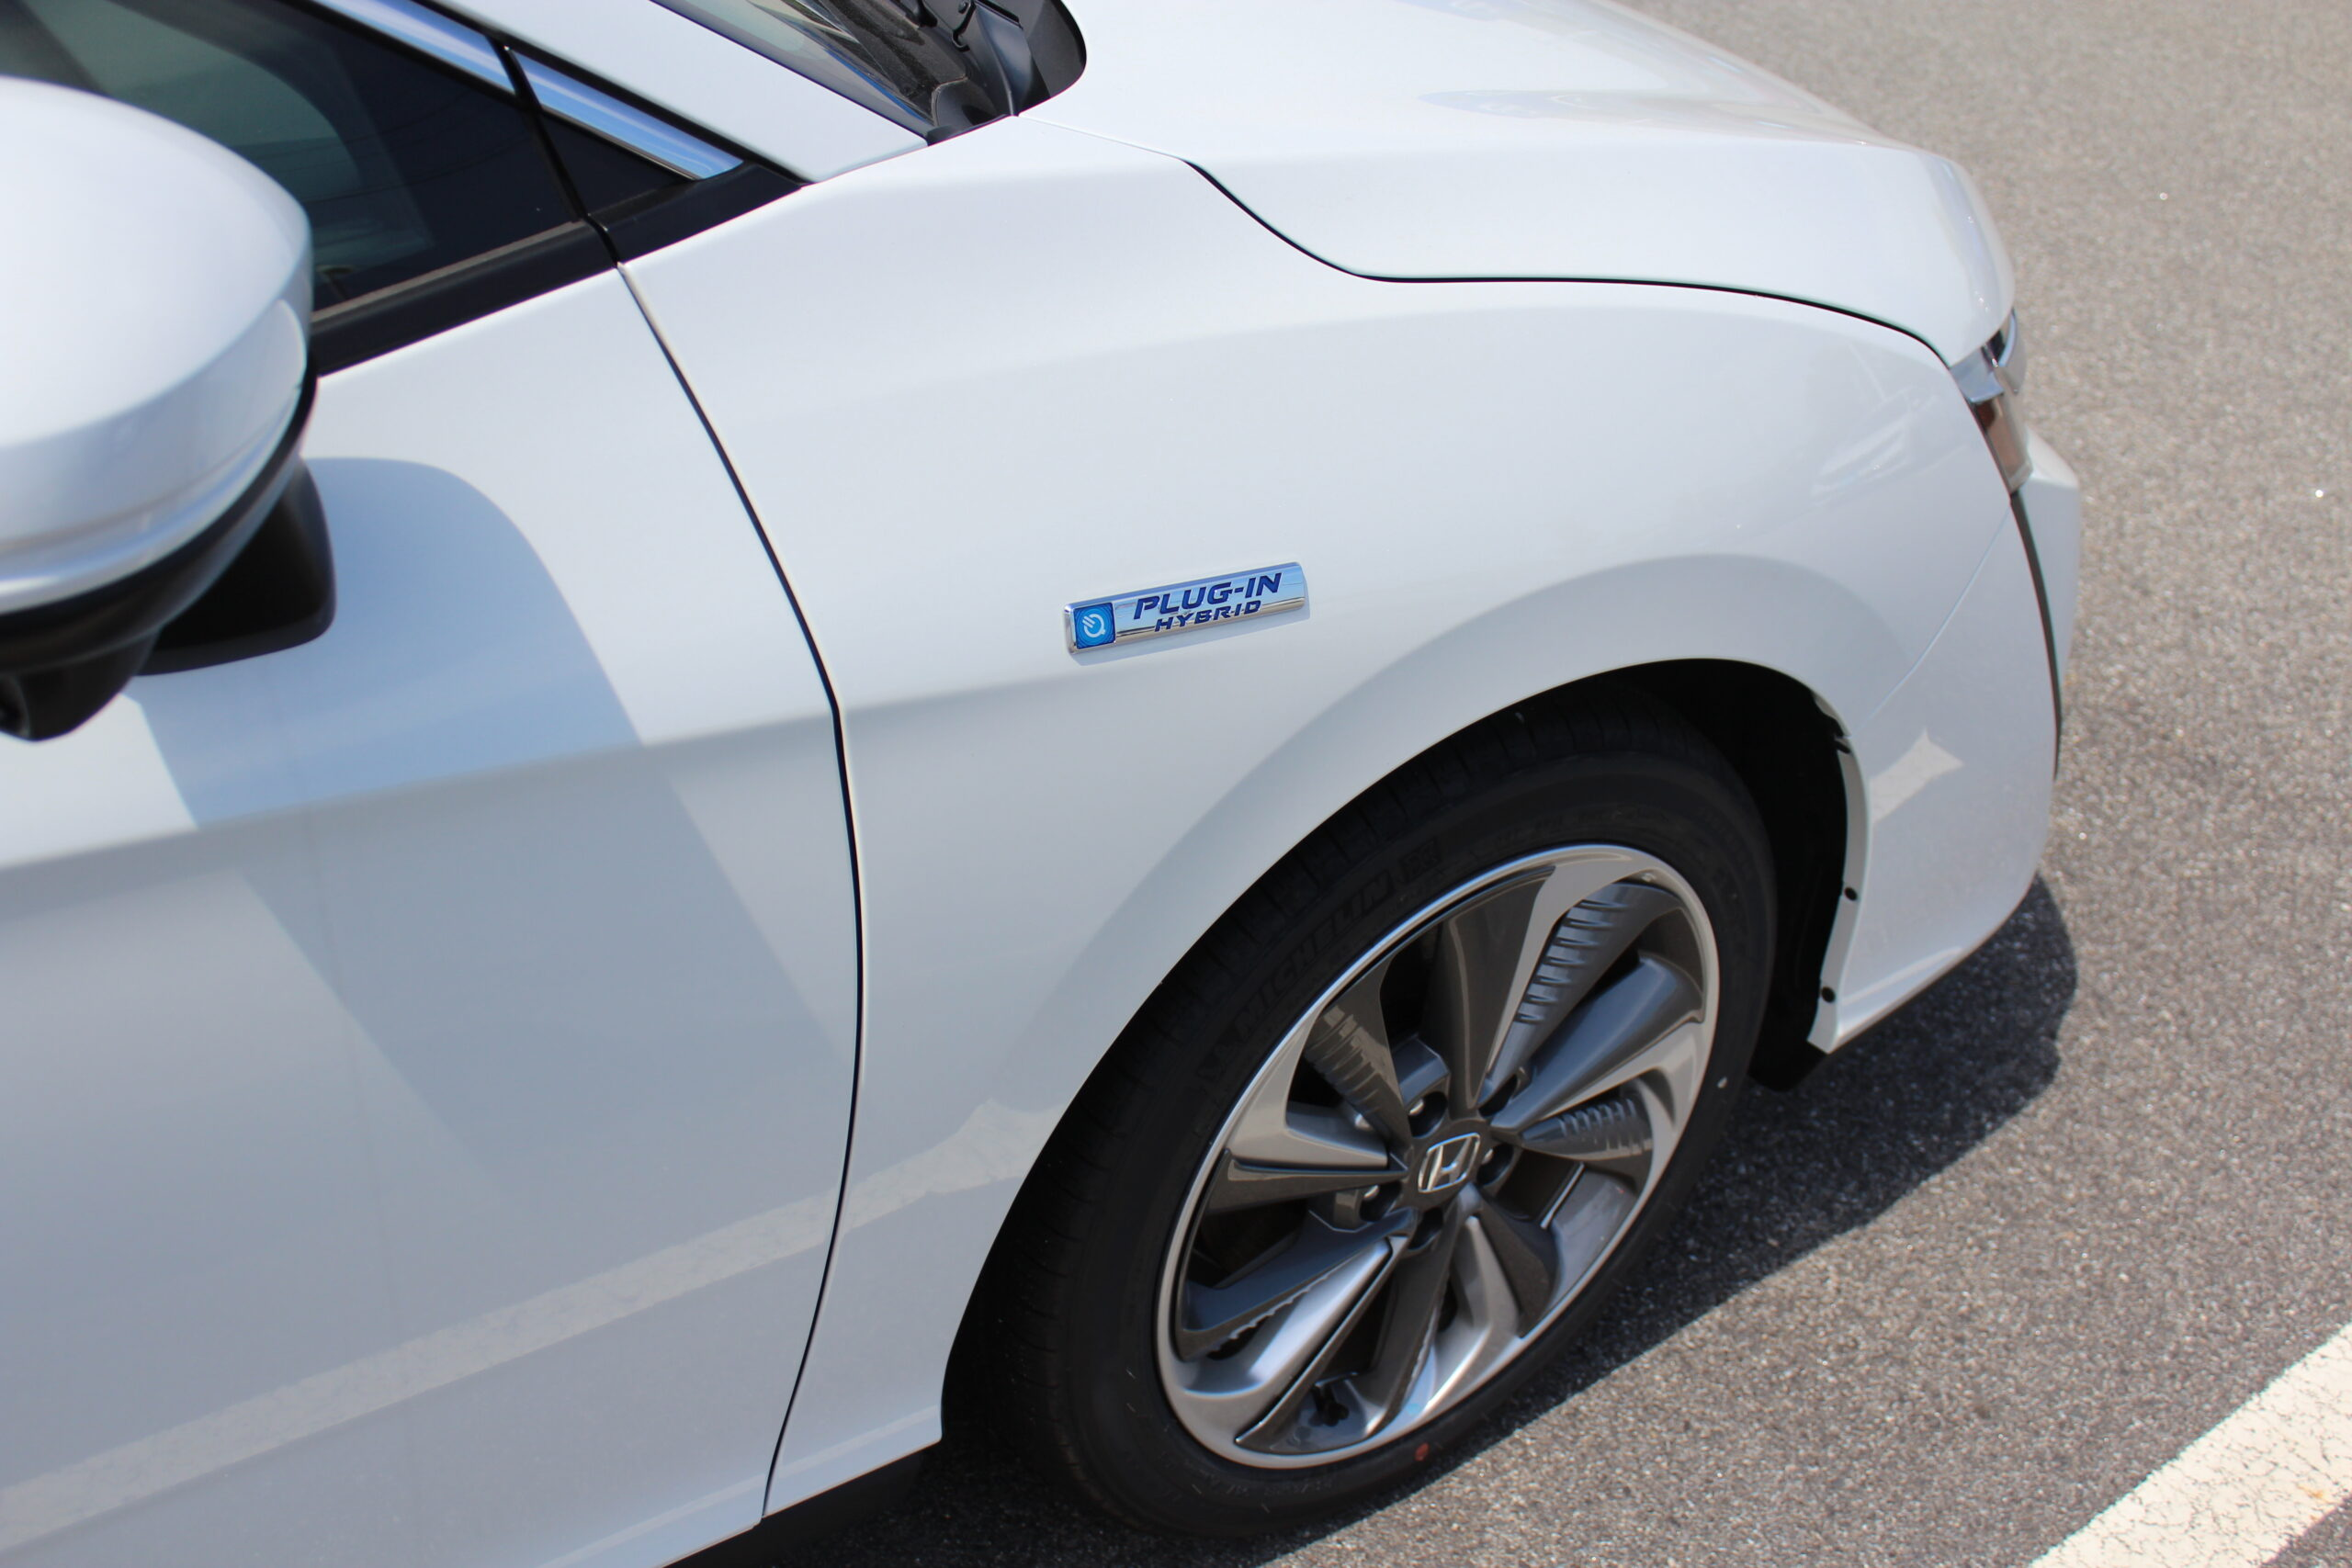 5 Reasons to Check Out a Plug-in Hybrid Electric Vehicle